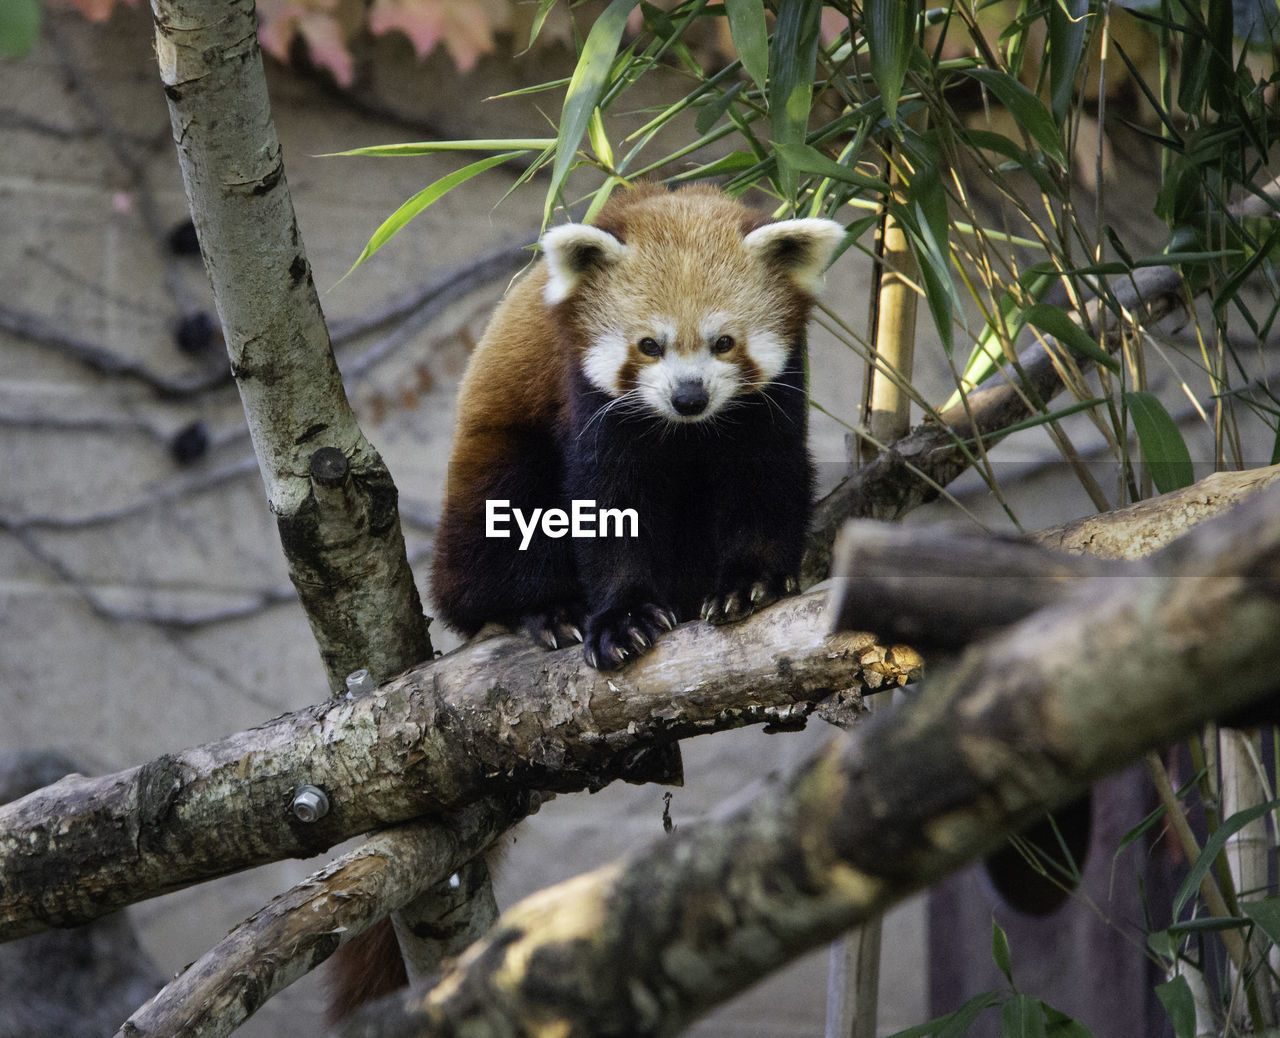 animal, animal wildlife, animal themes, tree, animals in the wild, one animal, branch, plant, mammal, vertebrate, panda - animal, red panda, nature, no people, day, selective focus, outdoors, focus on foreground, portrait, looking at camera, whisker